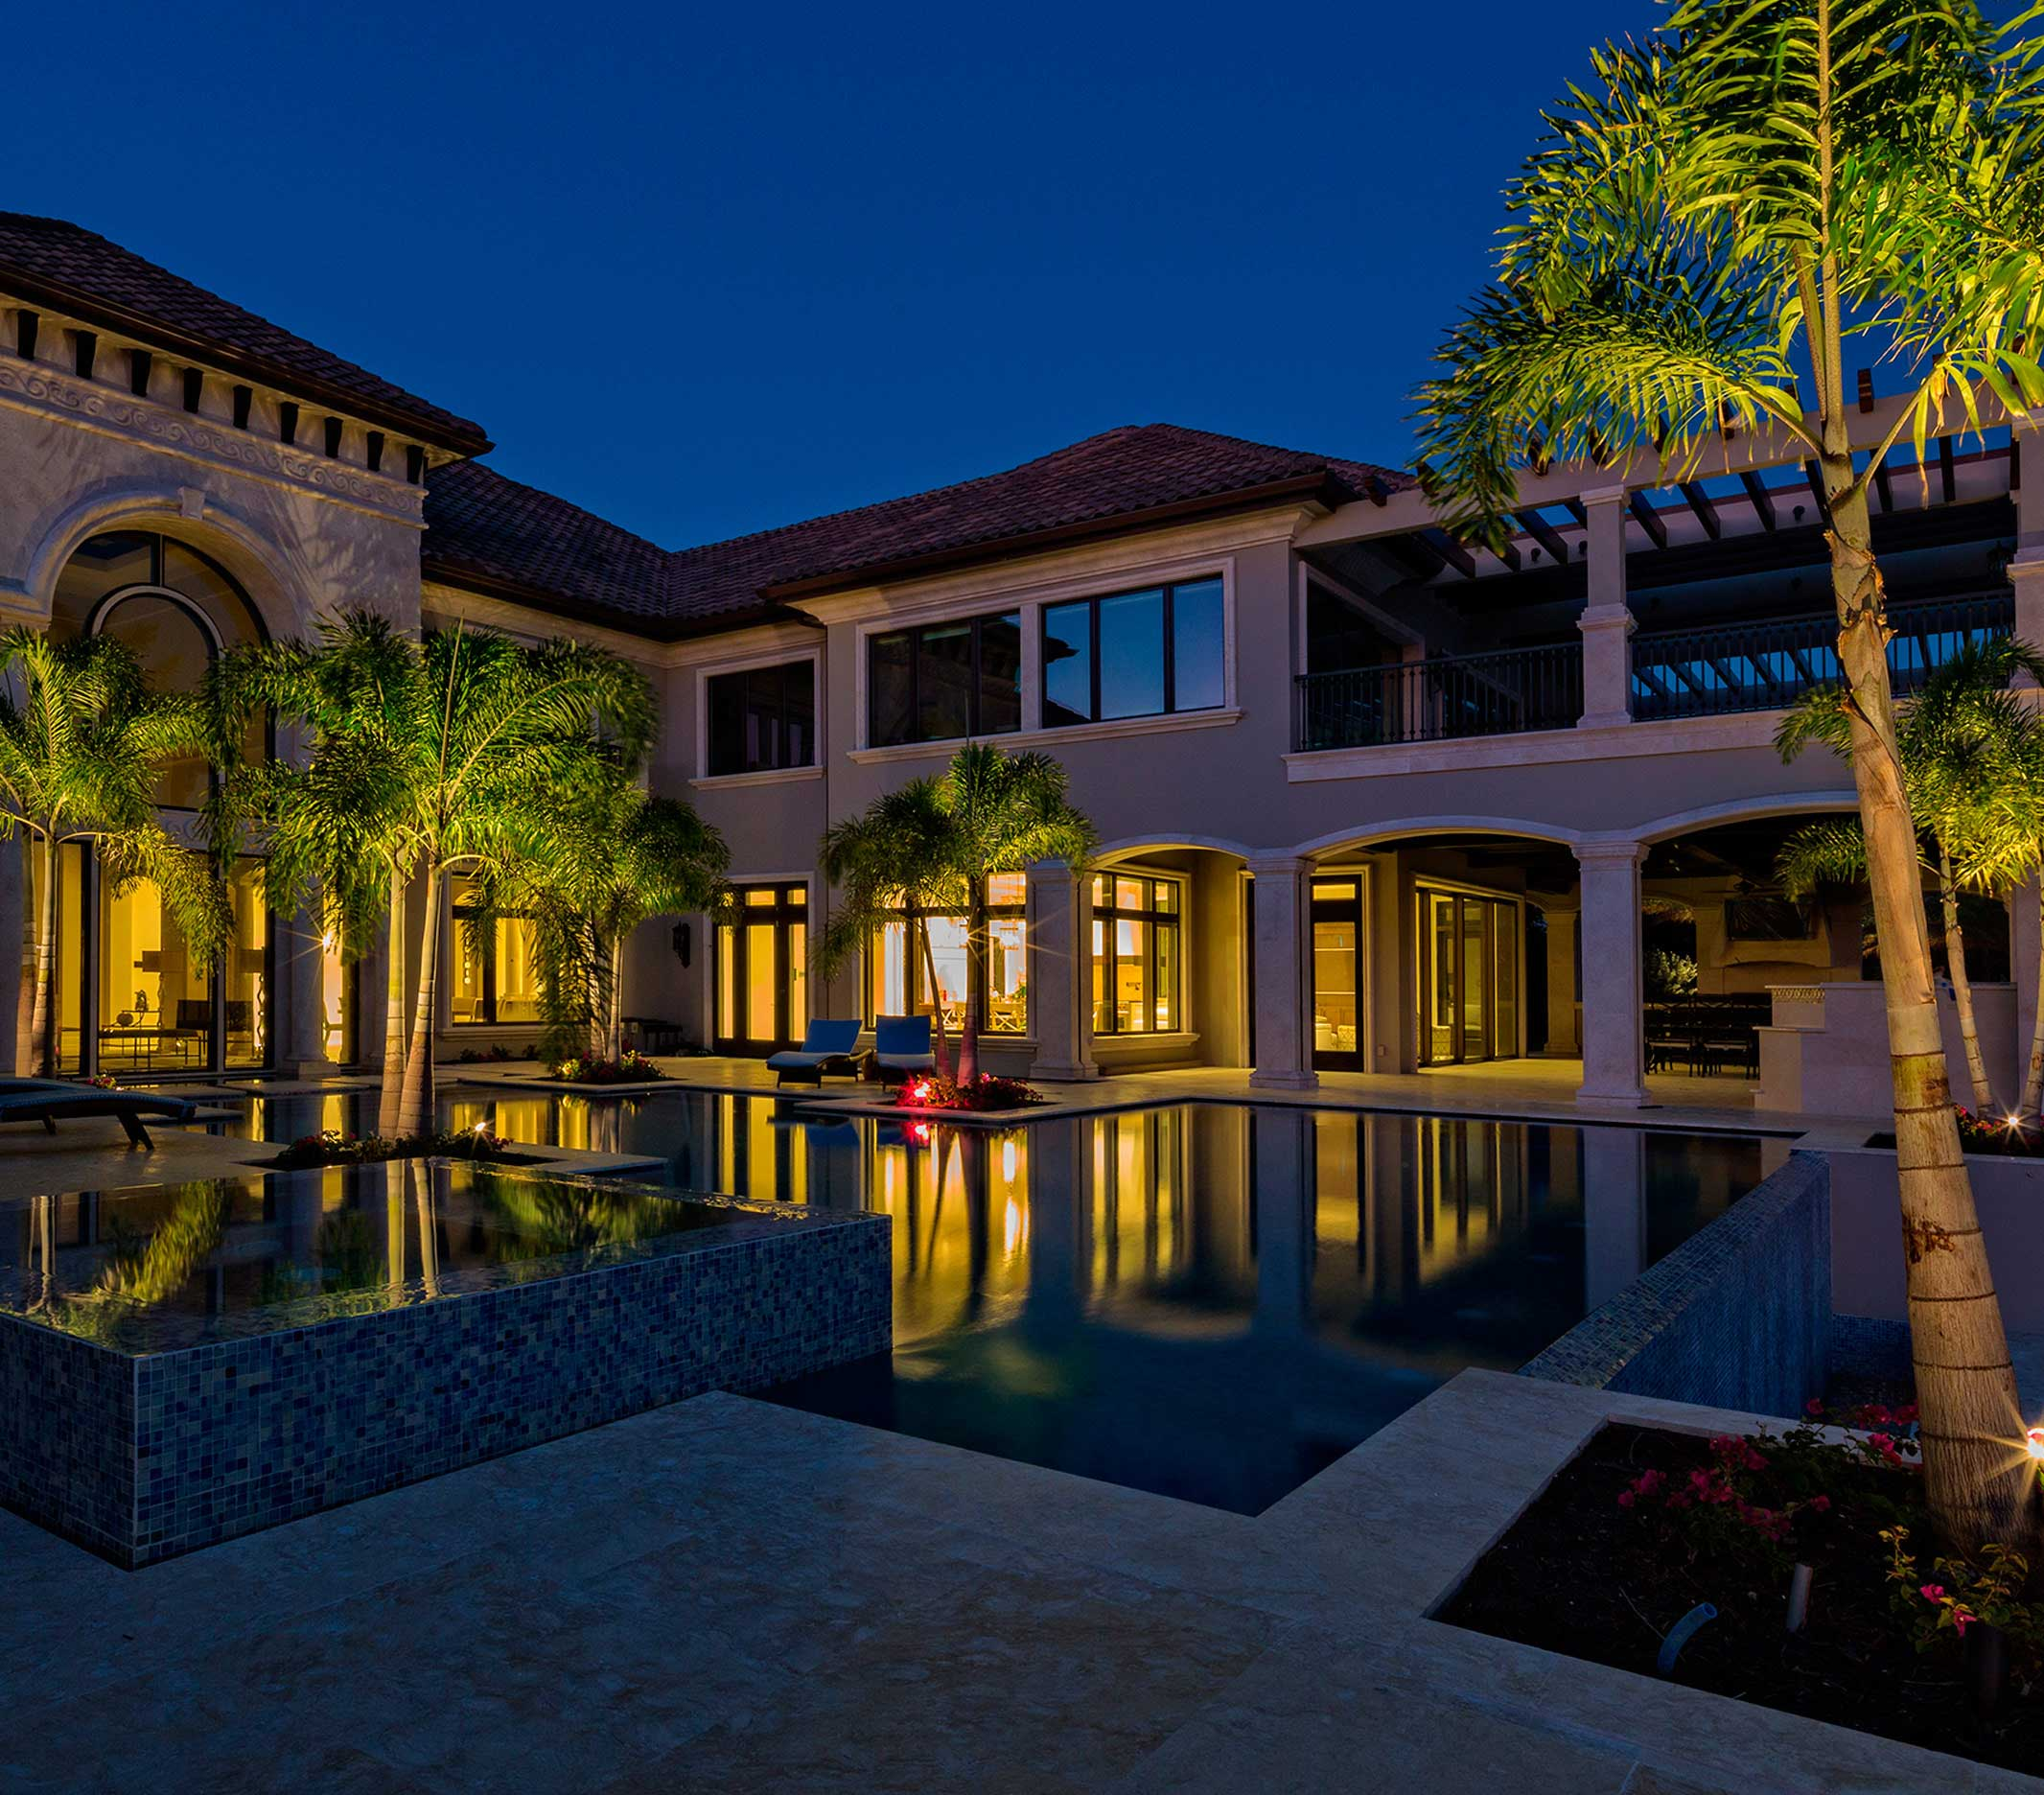 Picture of outdoor landscape lighting around a pool area of Naples home